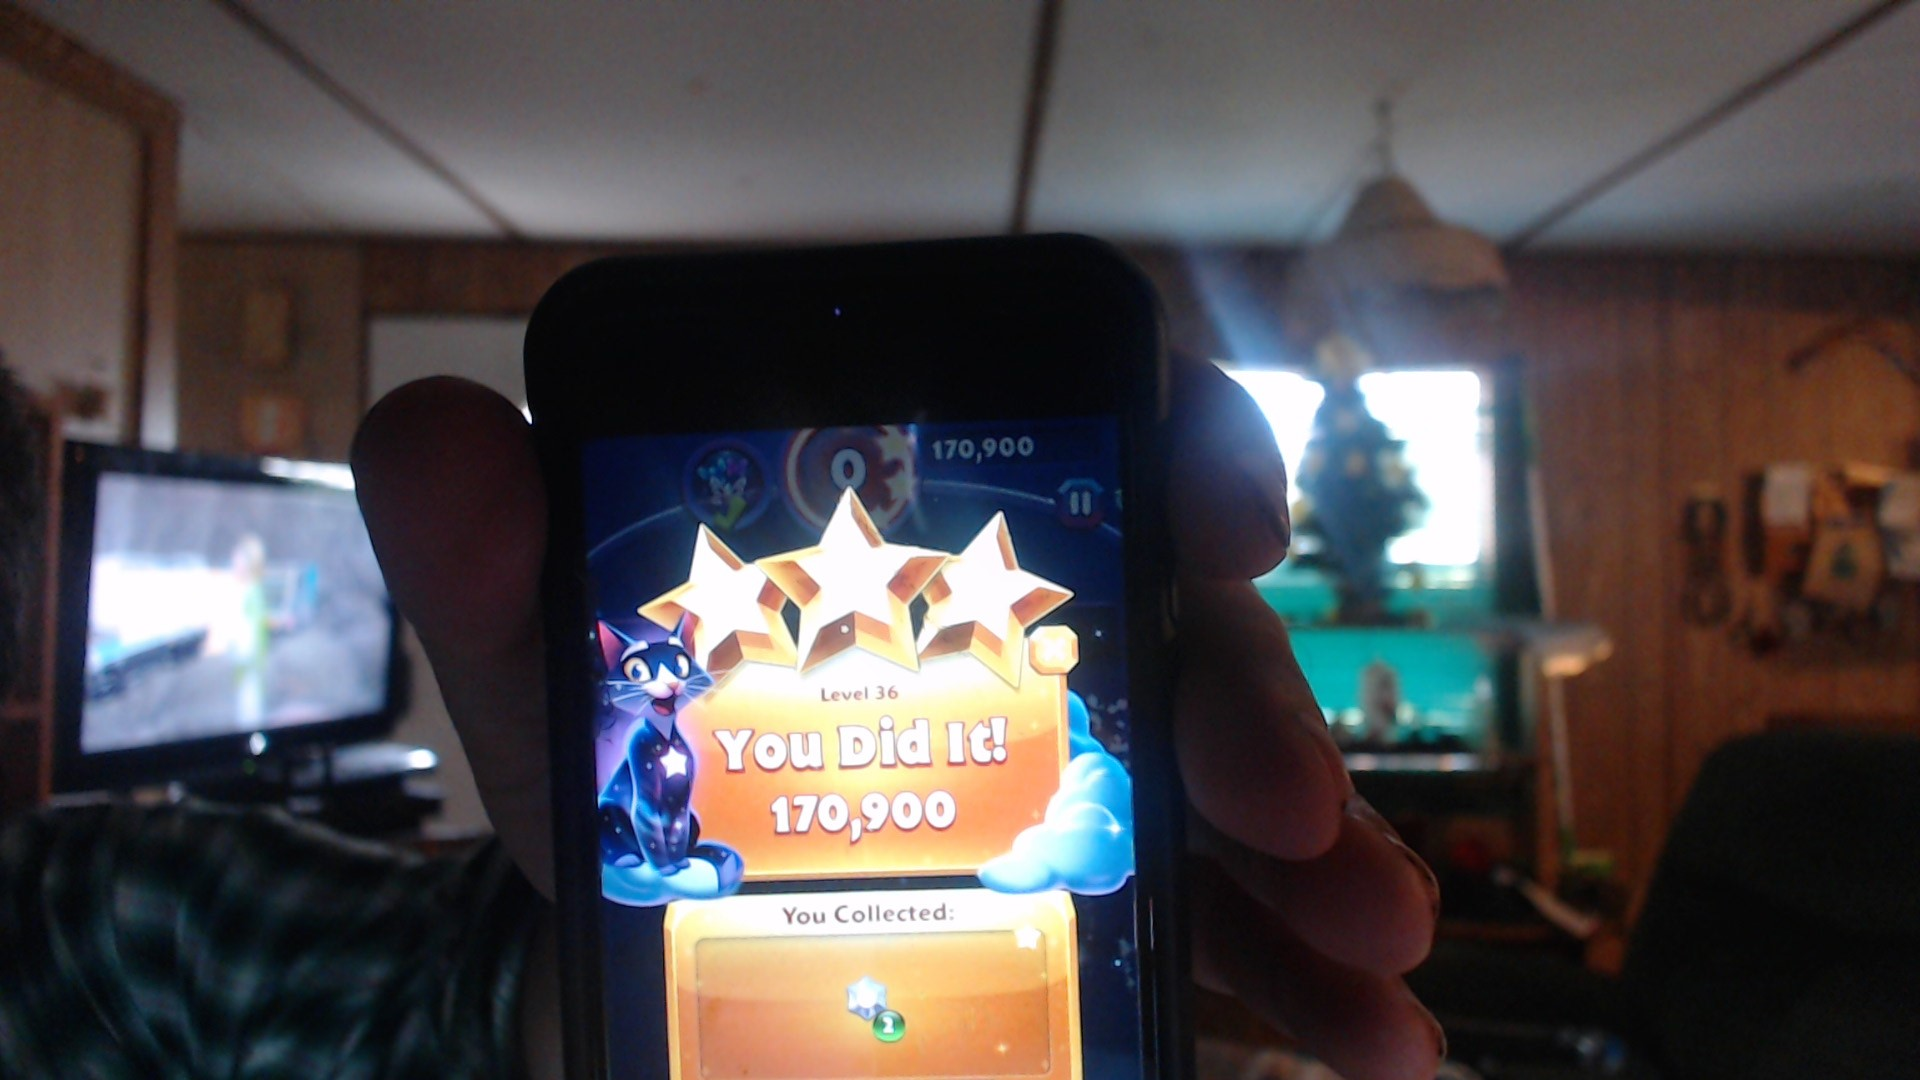 Bejeweled Stars: Level 36: Gotta catch em